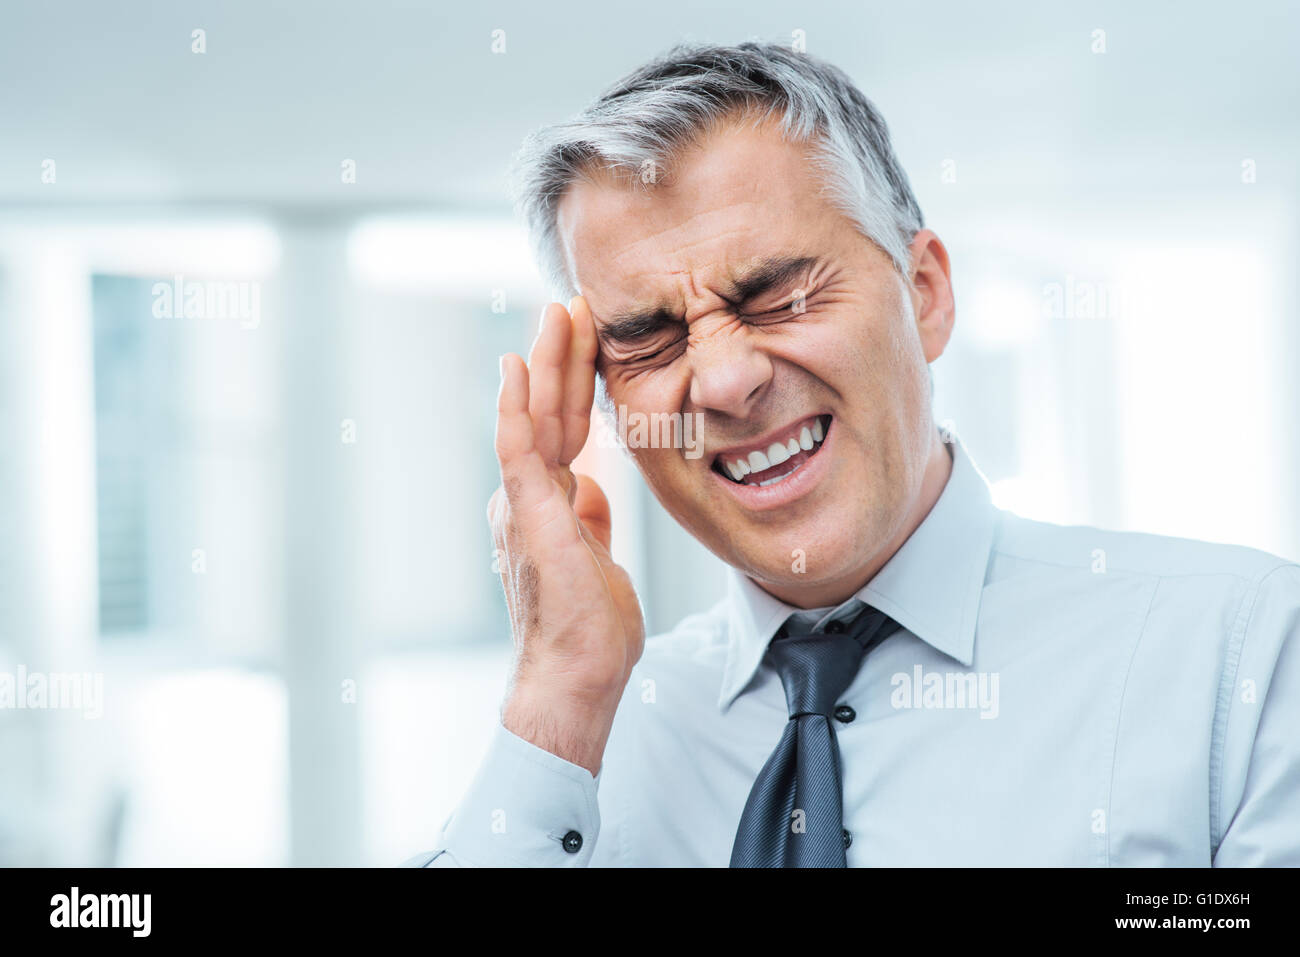 Suffering businessman having a terrible headache and touching his temples, stress and illness concept - Stock Image